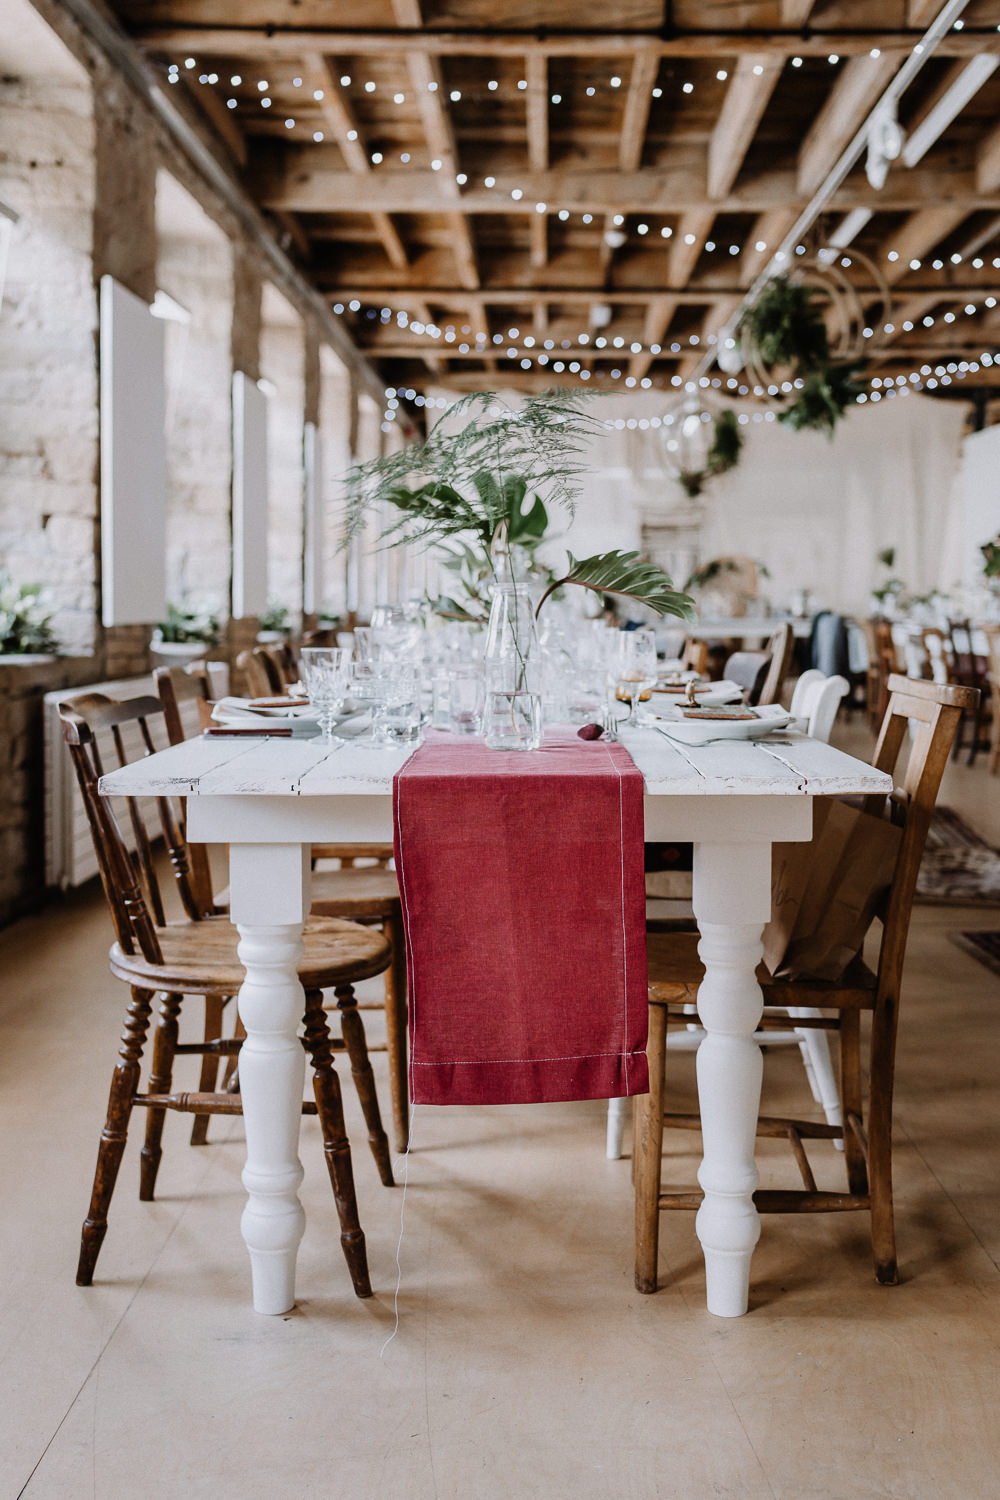 Bohemian Reception Room Decor Persian Rugs Hanging Hoops Greenery Foliage Wooden Chairs Botanical Industrial Wedding Caitlin and Jones Photography